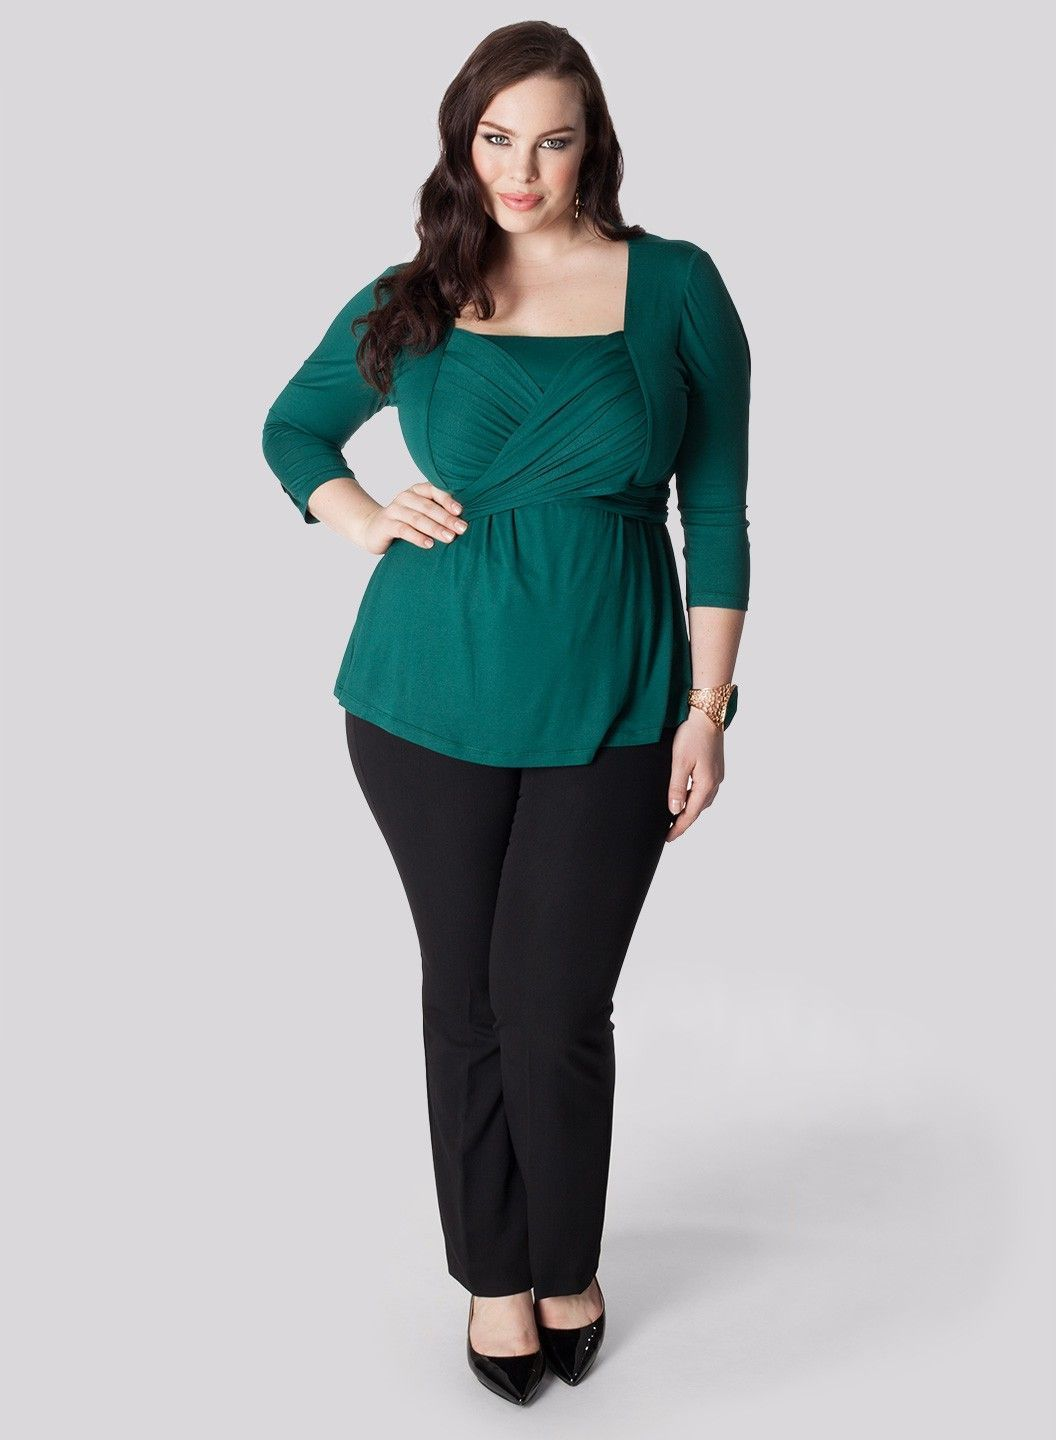 36 Work Outfit Ideas For Plus Sized Women | Business ...